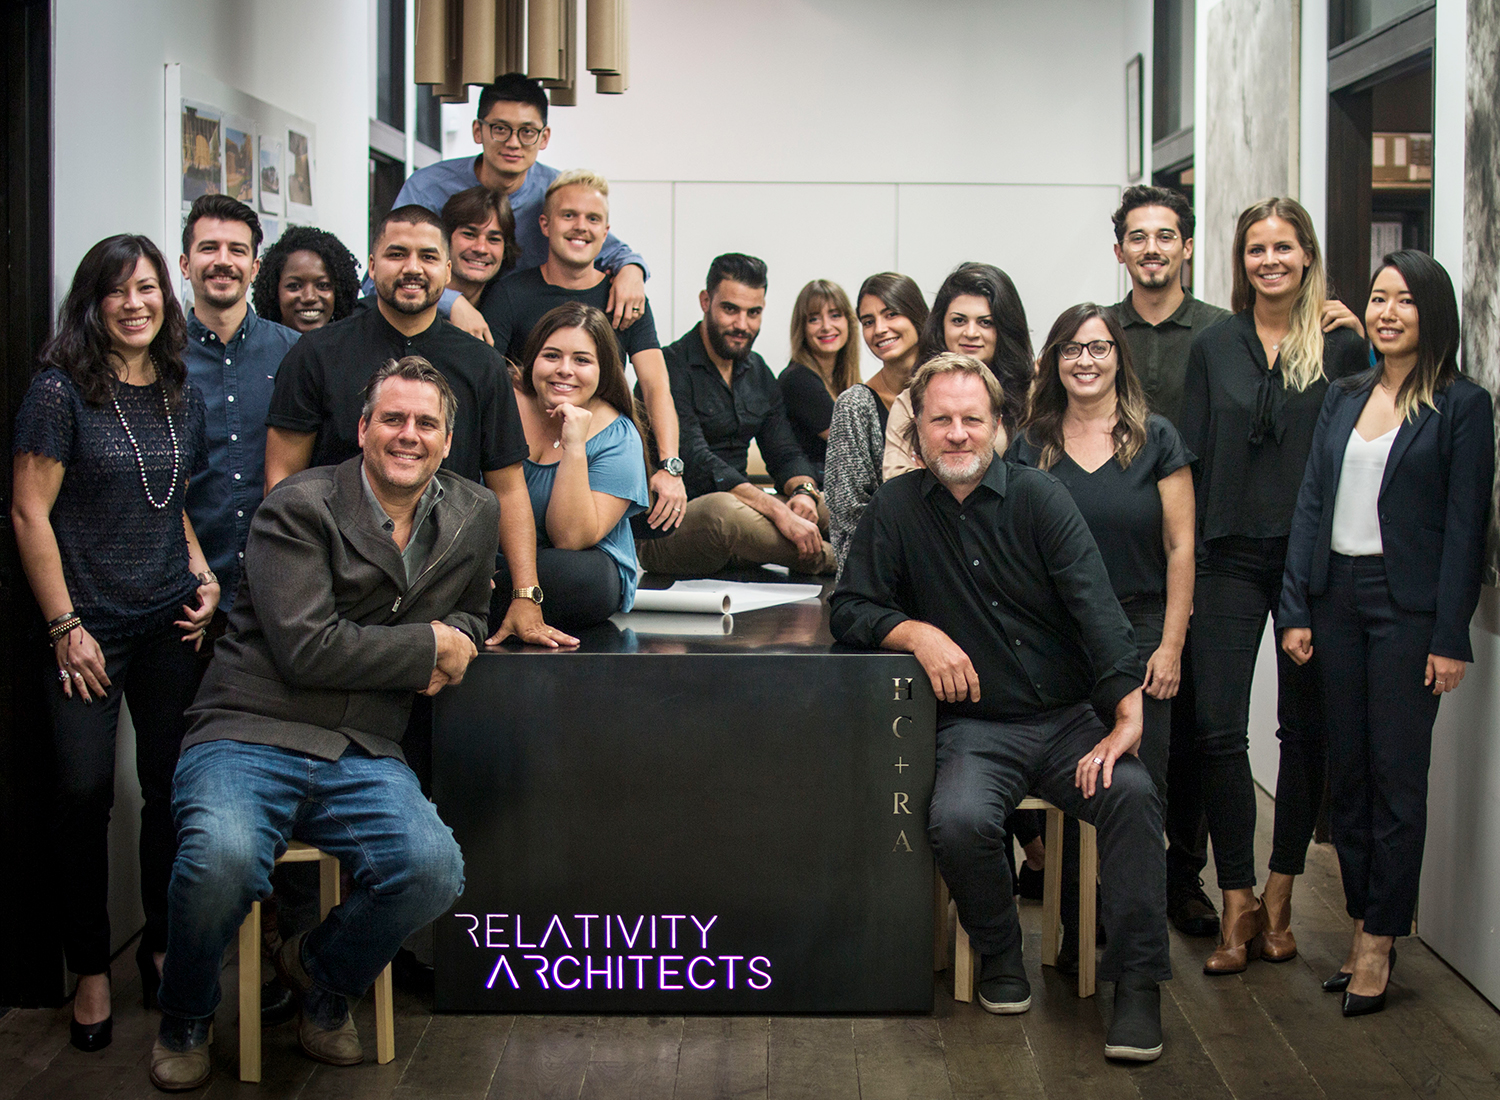 RELATIVITY ARCHITECTS IS AN OFFICE OF DISTINCT, DIVERSE AND CREATIVE PROFESSIONALS CELEBRATED THROUGH HOLISTIC COLLABORATION. NOT ONLY DOES THIS APPROACH PRODUCE MORE INFORMED AND CREATIVE ARCHITECTURE, BUT IT SETS THE STAGE FOR A PRACTICE OF IDEAS AND NOT OF EGOS. IT IS, ALSO, INHERENTLY MORE FUN.